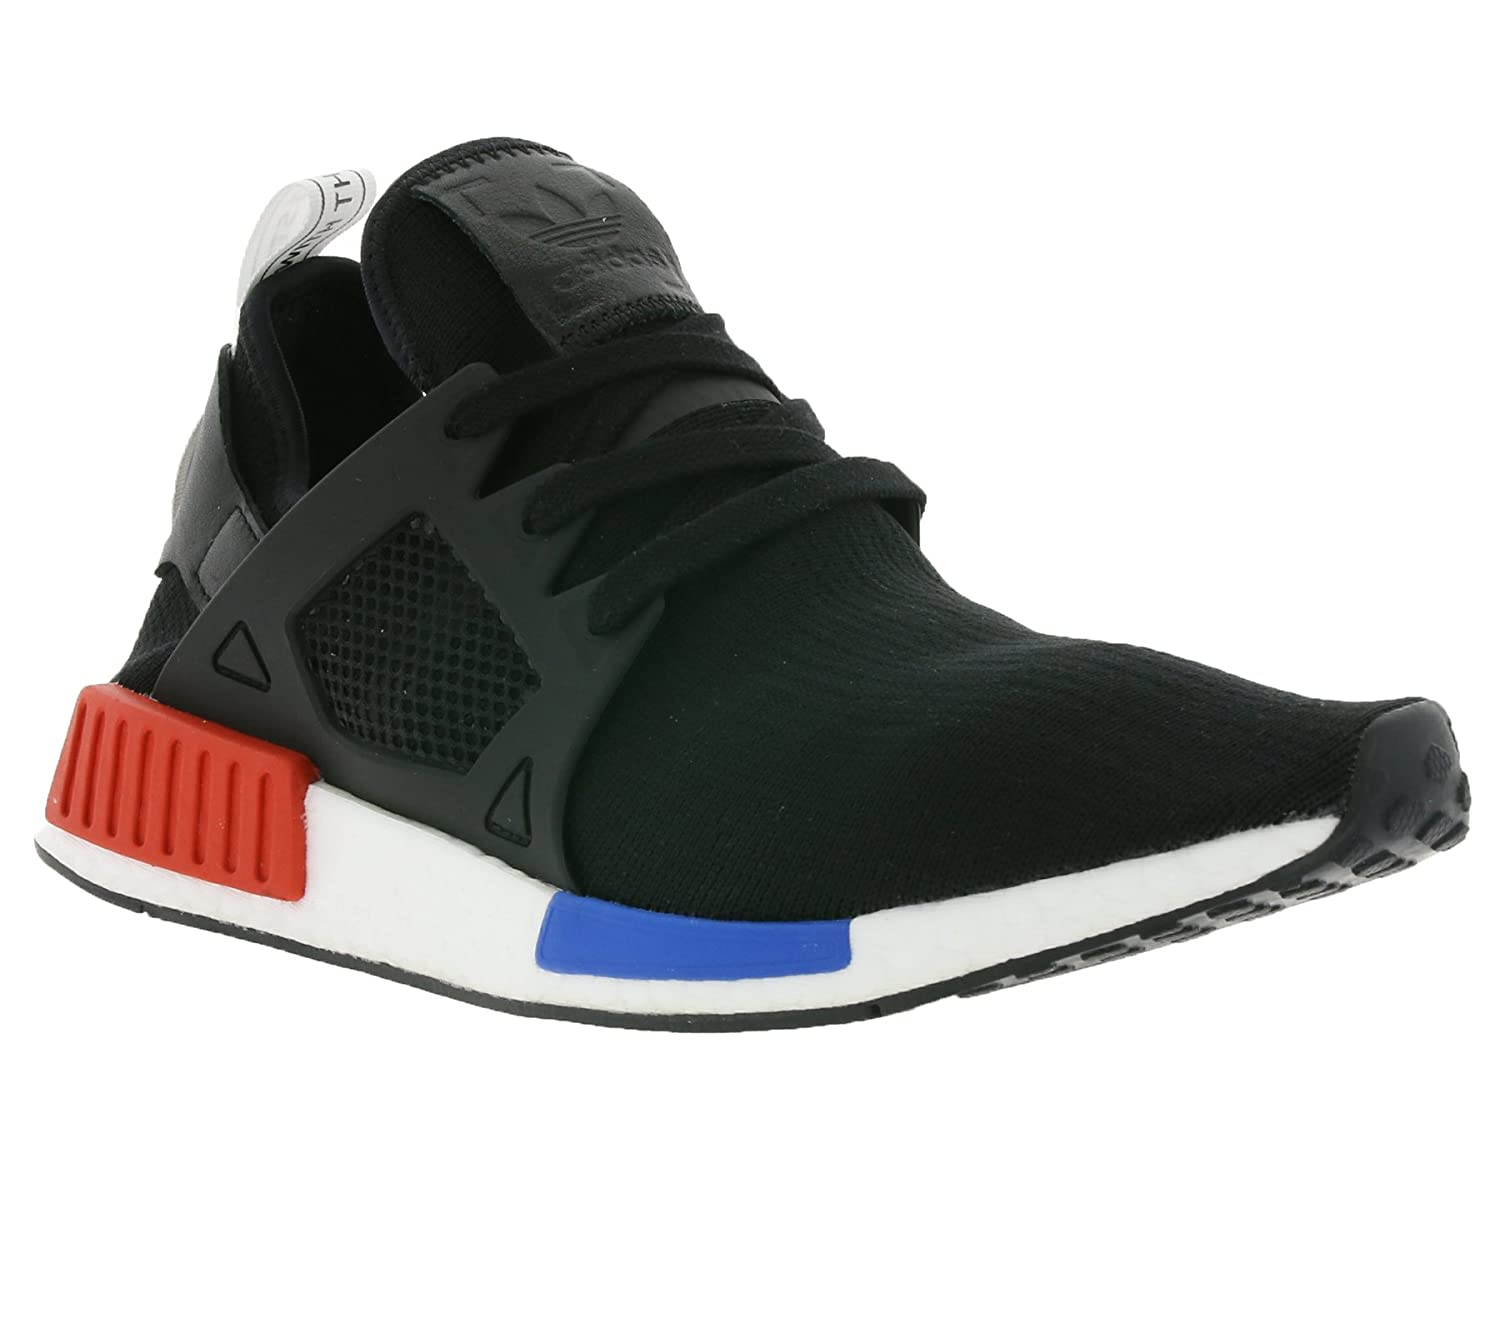 best website fcb26 315ec adidas Men Shoes Sneakers NMD XR1 Primeknit  Amazon.co.uk  Shoes   Bags